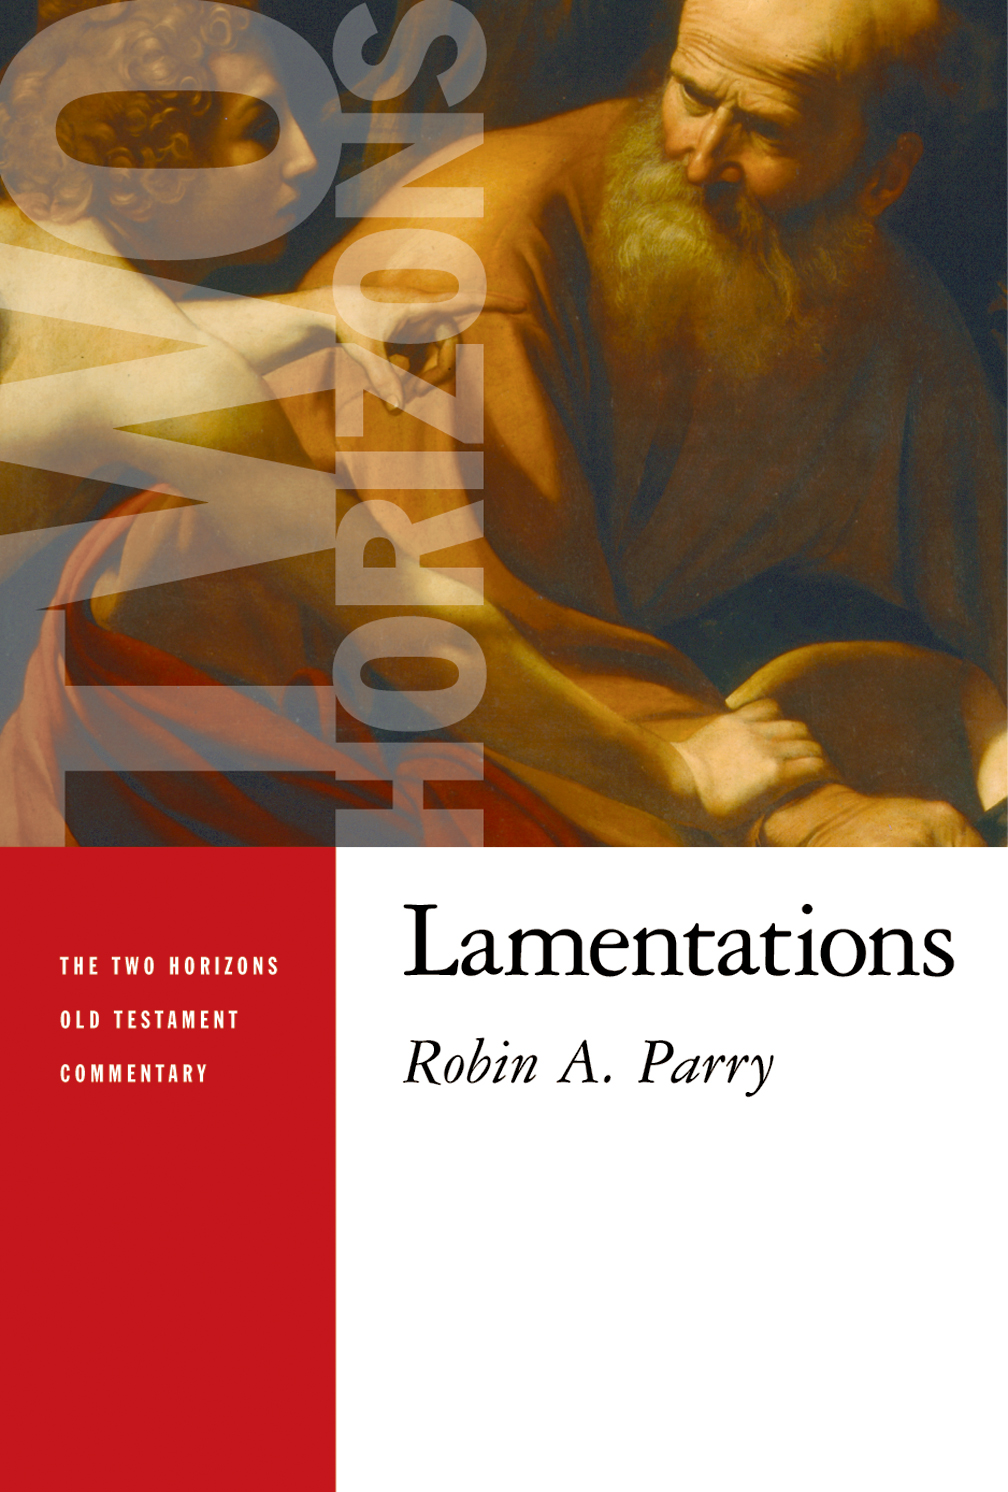 essay on the book of lamentations Online download lamentations of the father essays lamentations of the father essays find loads of the book catalogues in this site as the choice of you visiting this.